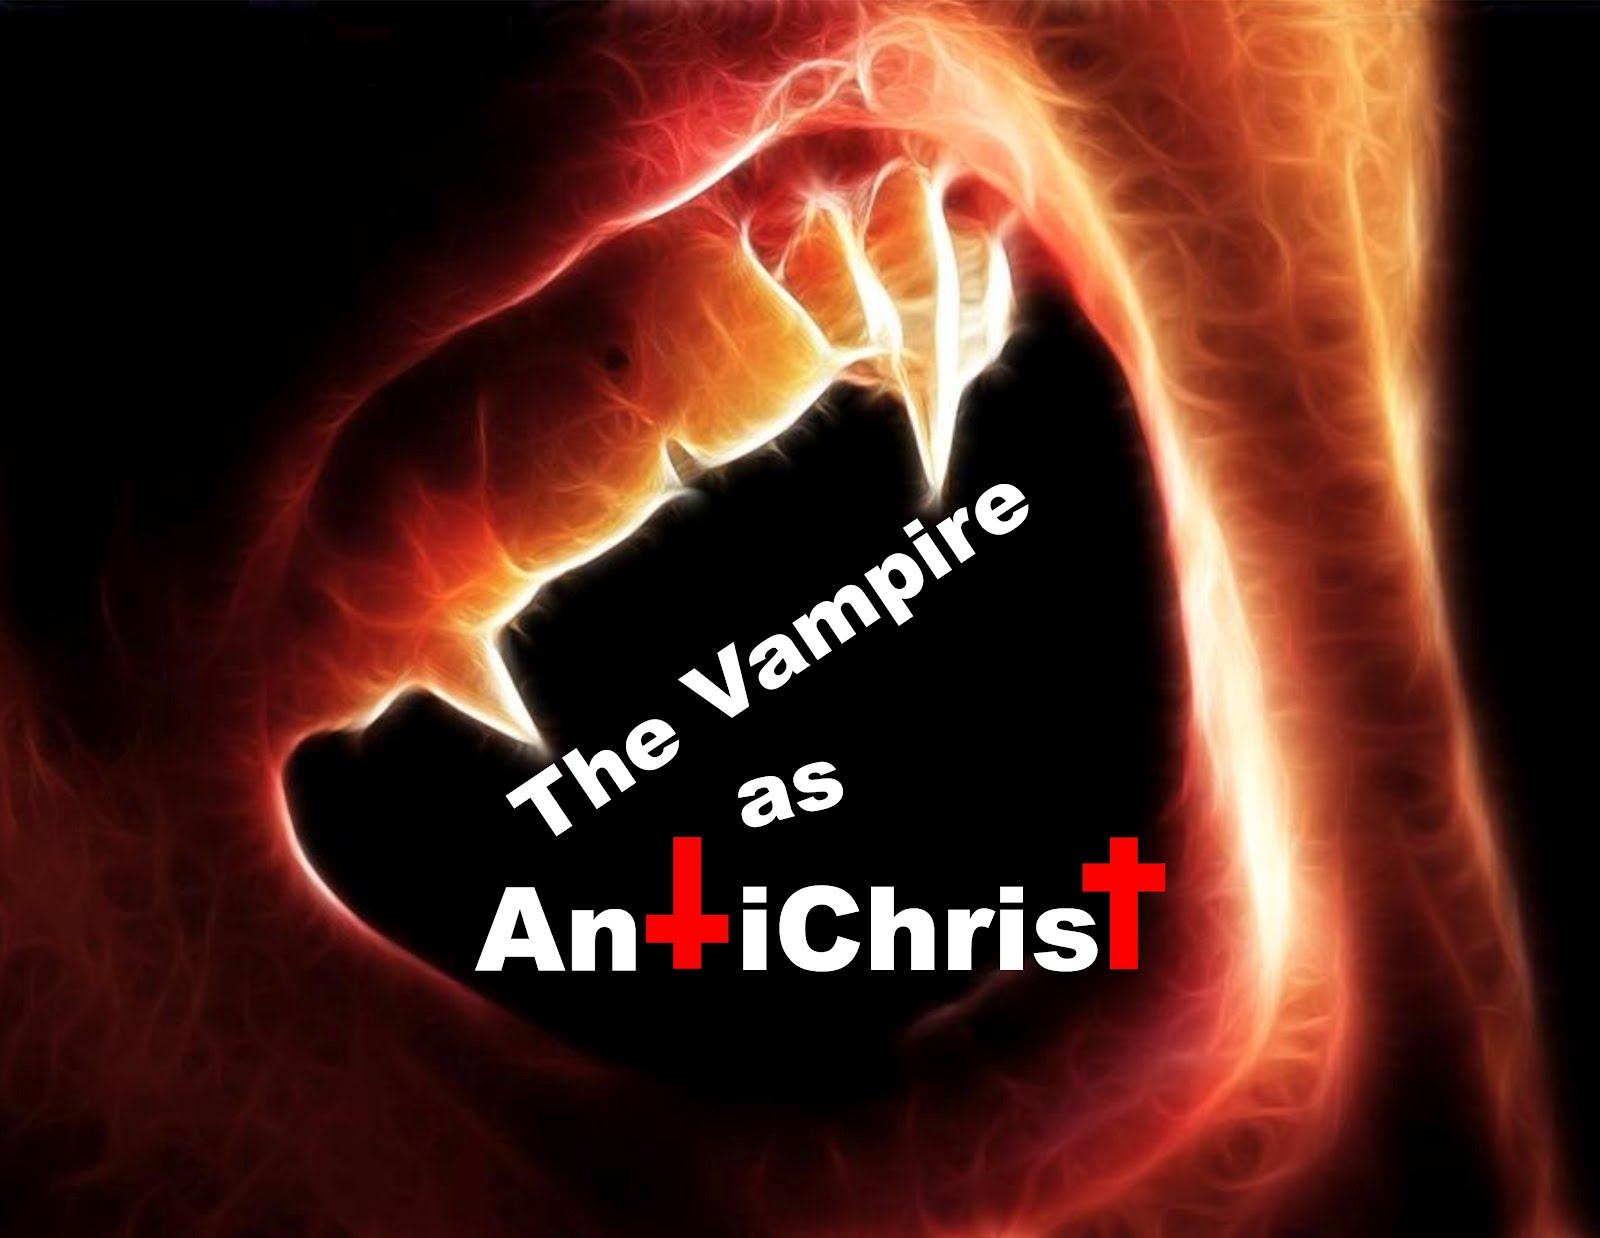 anti christ The antichrist, the image, and the mark of the beast one of the major events to occur just before the return of christ as conquering king is the appearance of an individual called the antichrist.